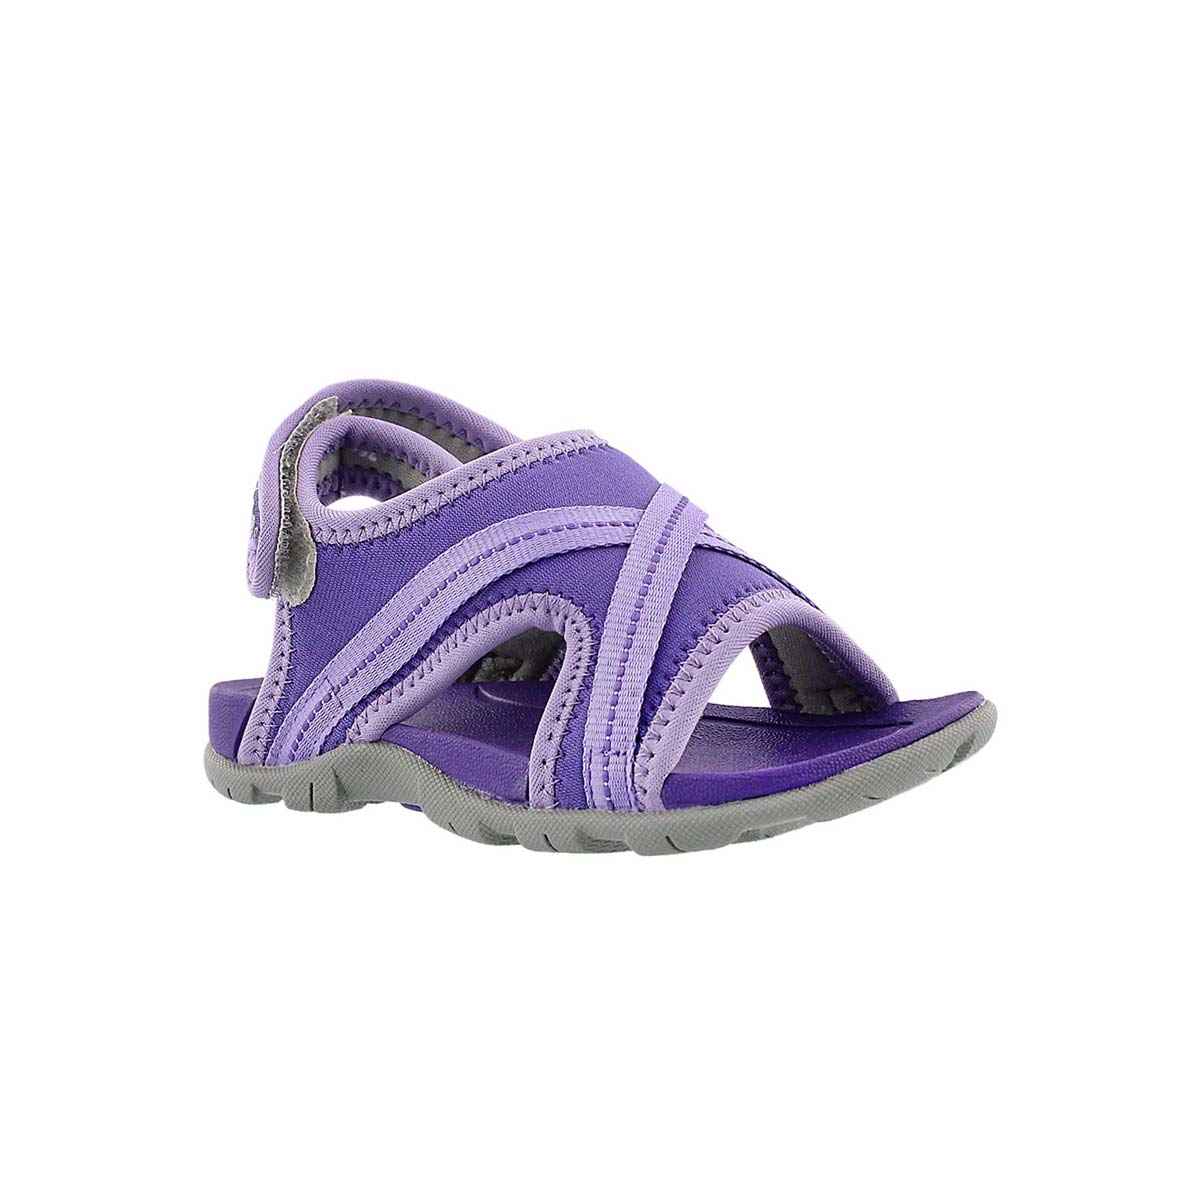 Infants' BLUEFISH violet waterproof sport sandals